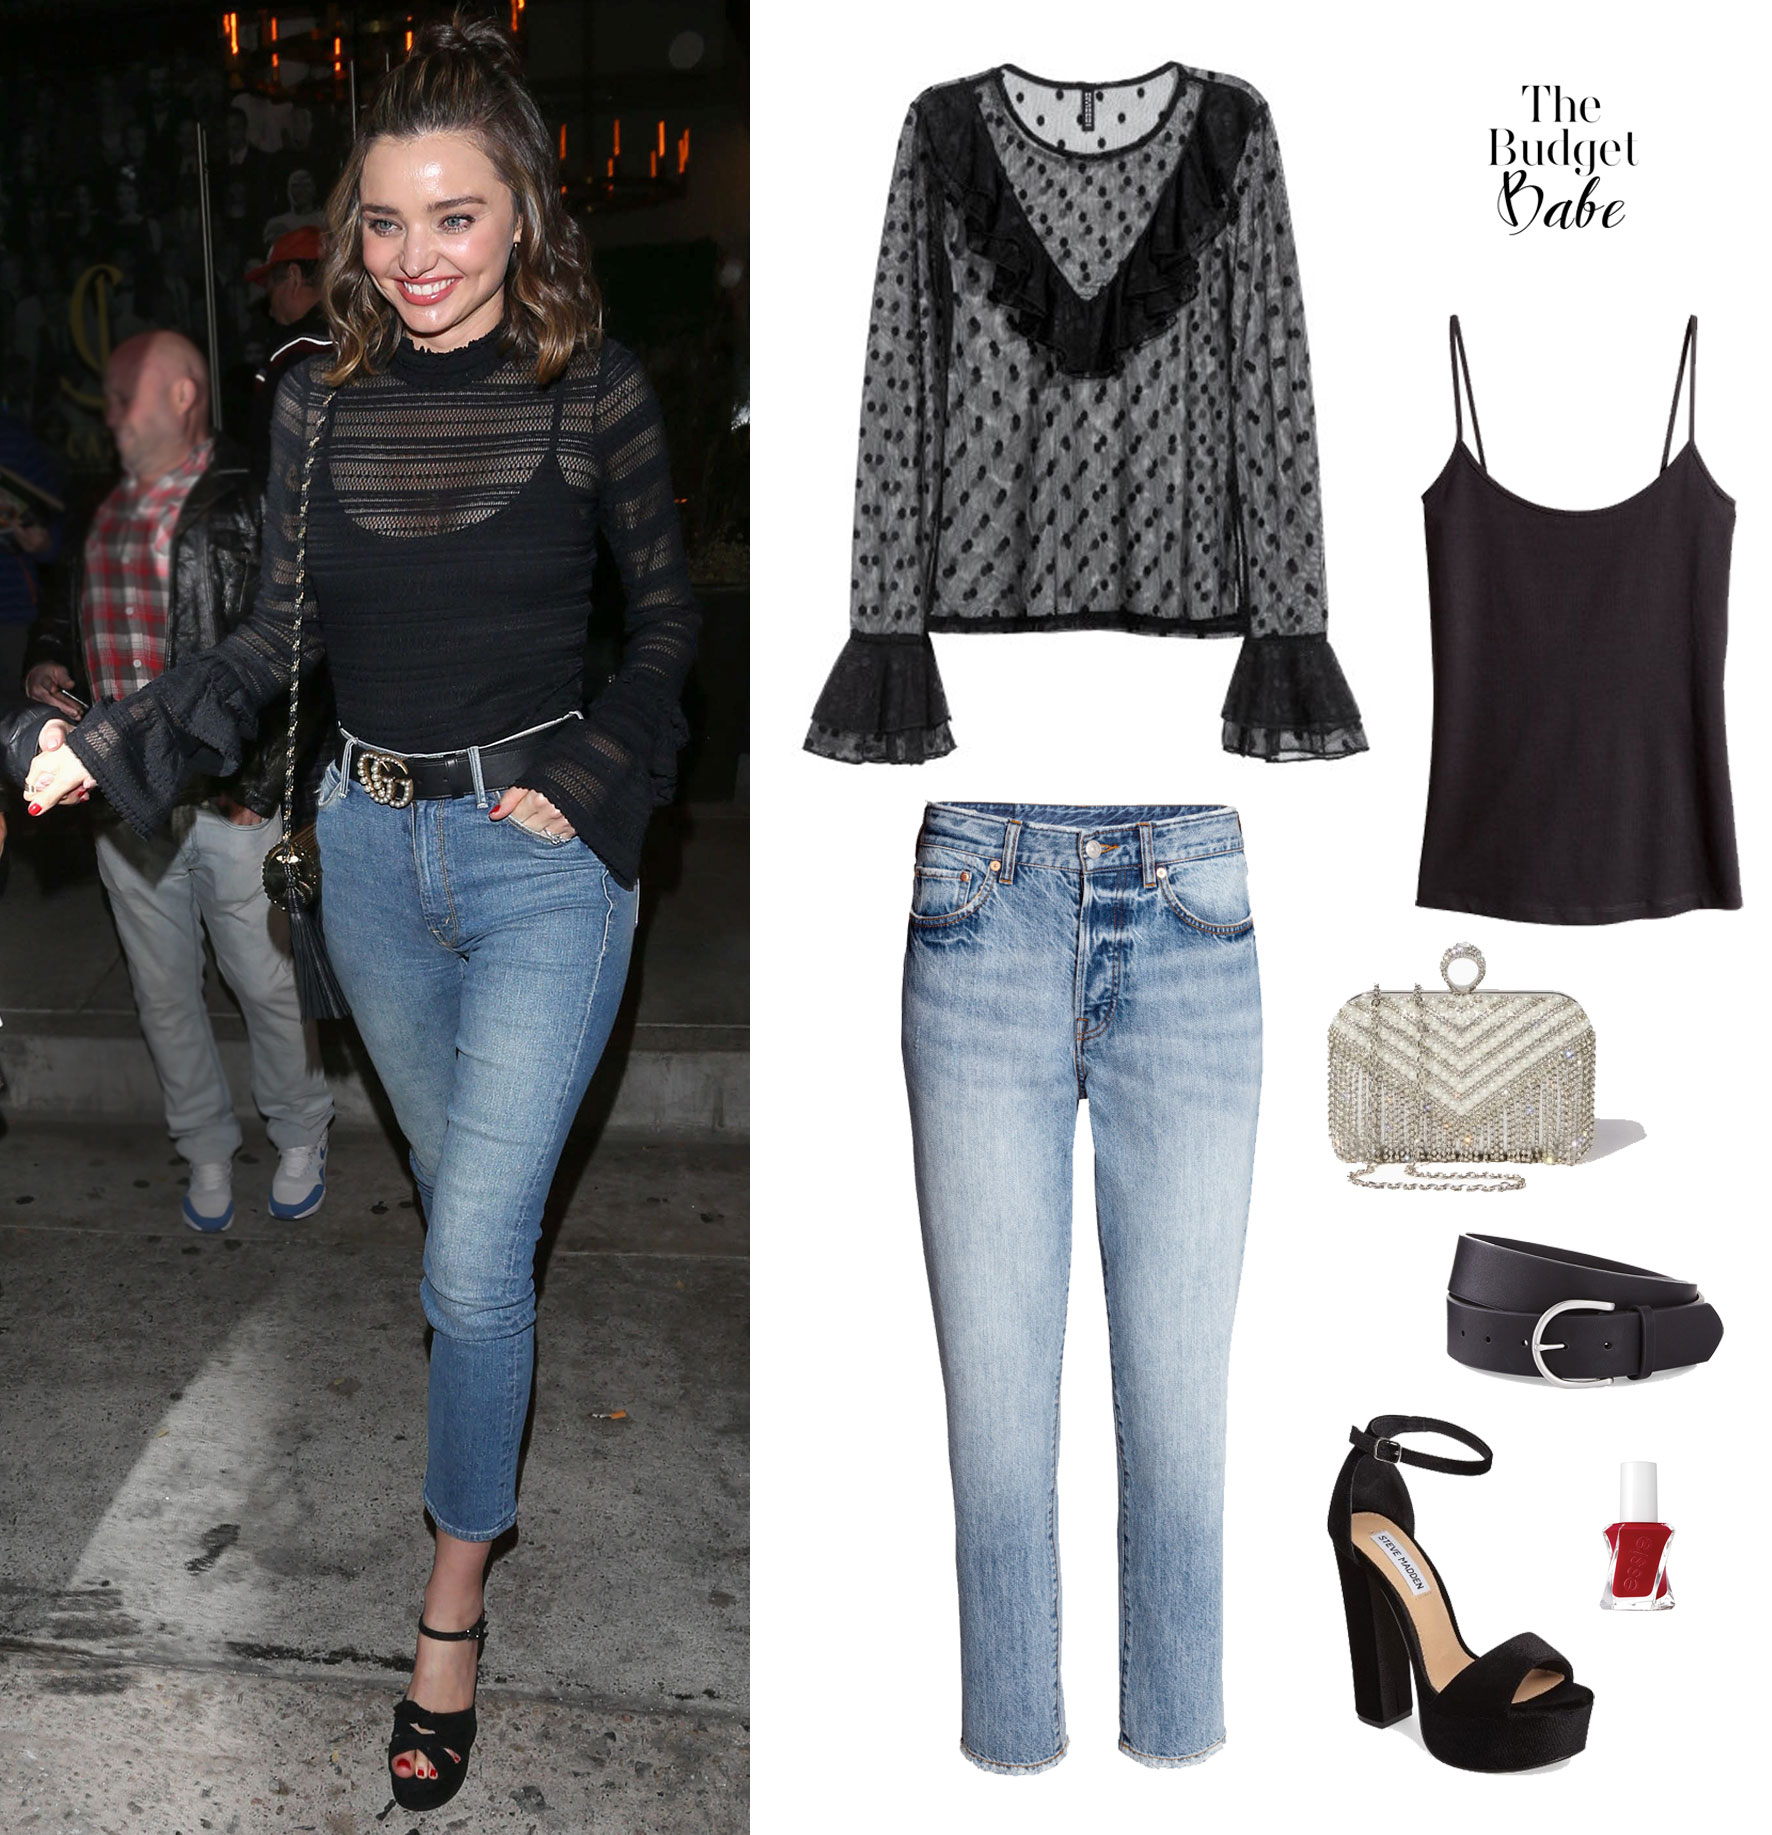 a0f7715ee84 Sheer Genius  Miranda Kerr s Black Lace Blouse and Crop Jeans Look ...